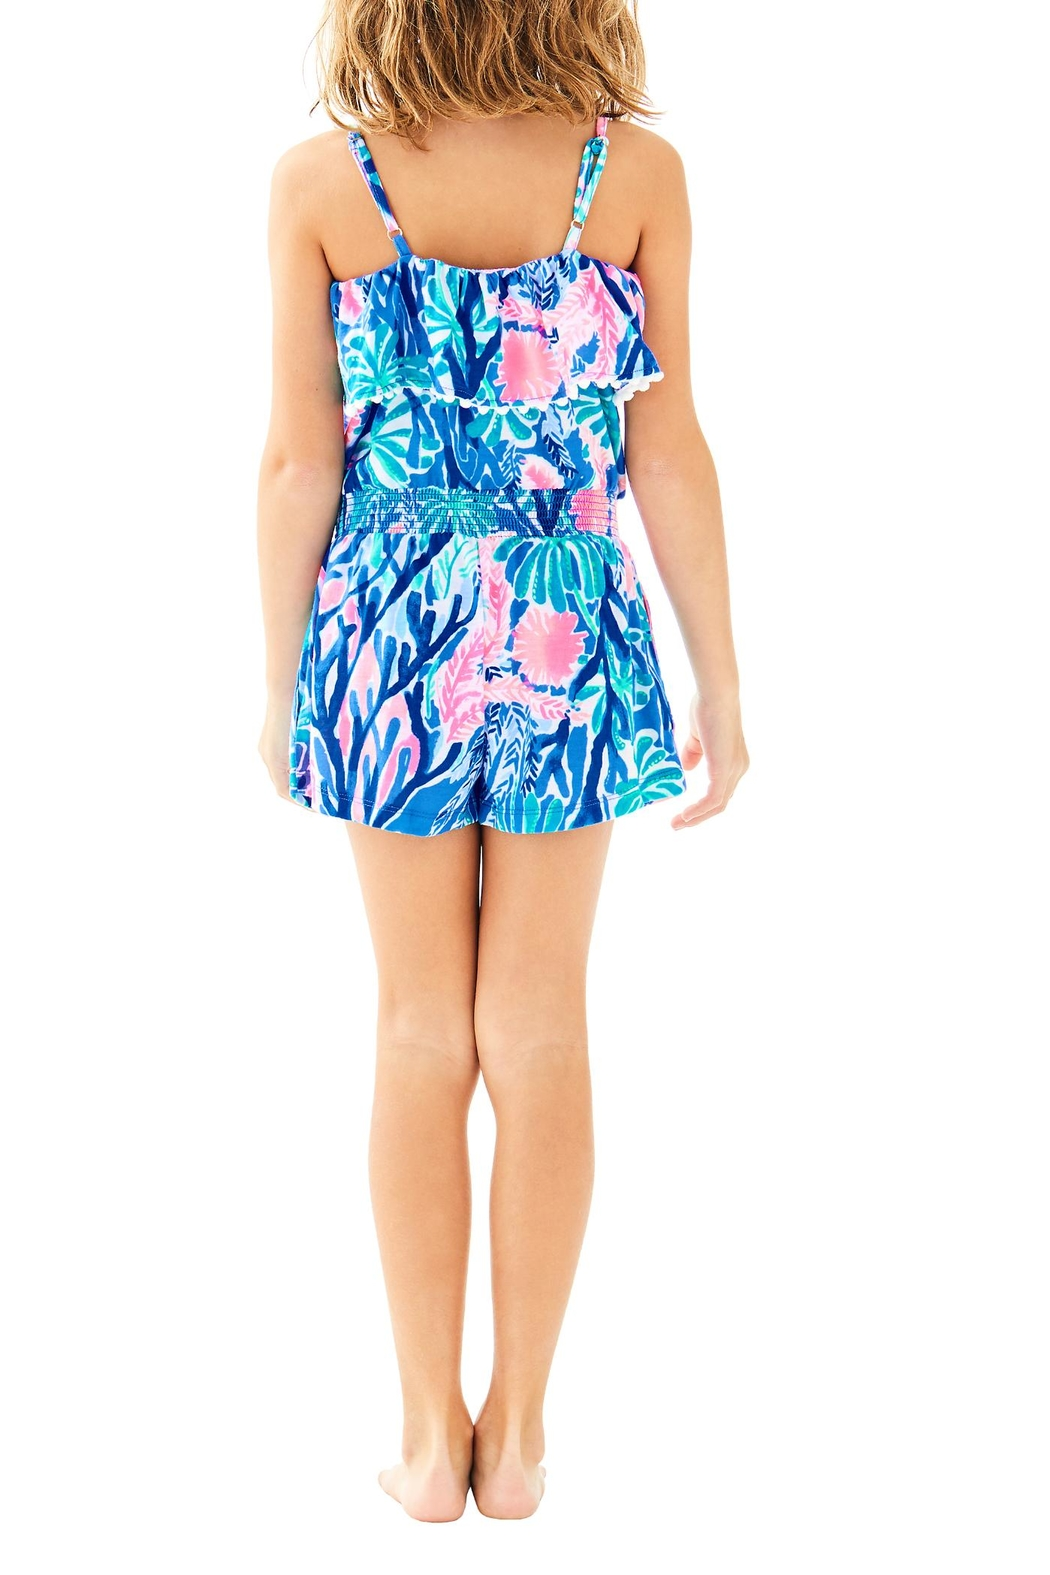 Lilly Pulitzer Girls Leonie Romper - Front Full Image